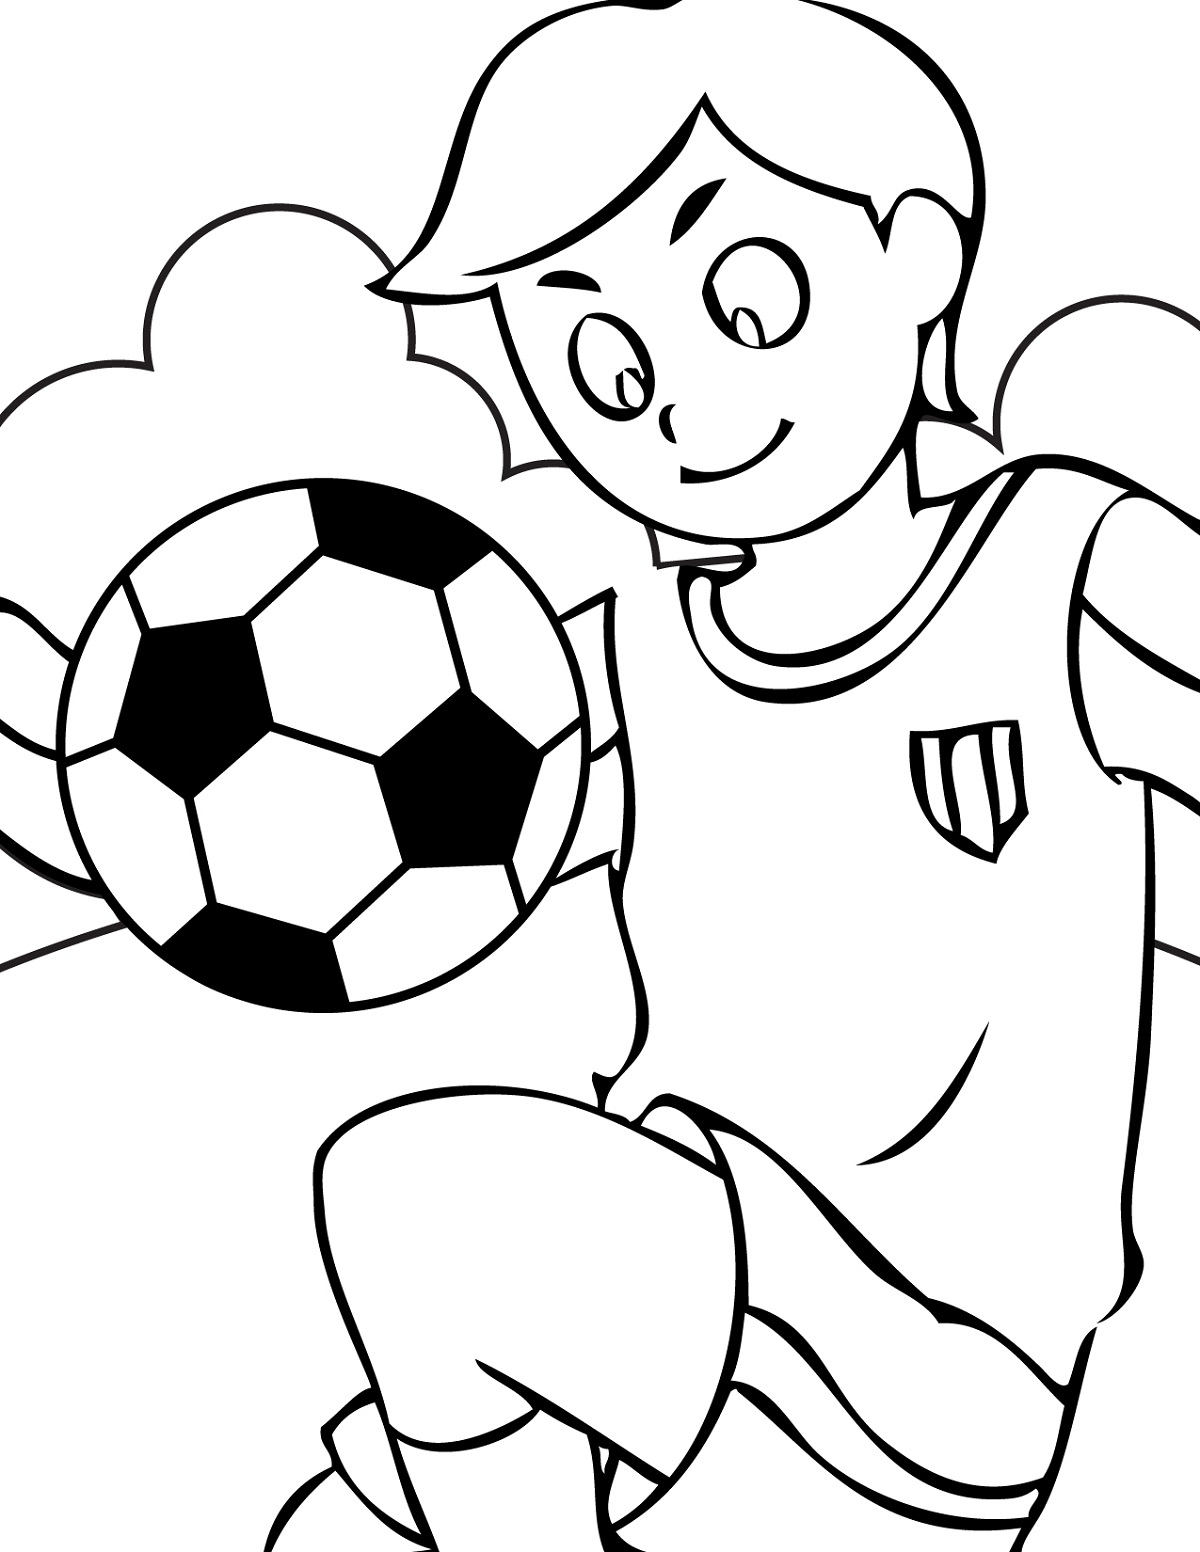 Soccer Worksheets For Kids Activity